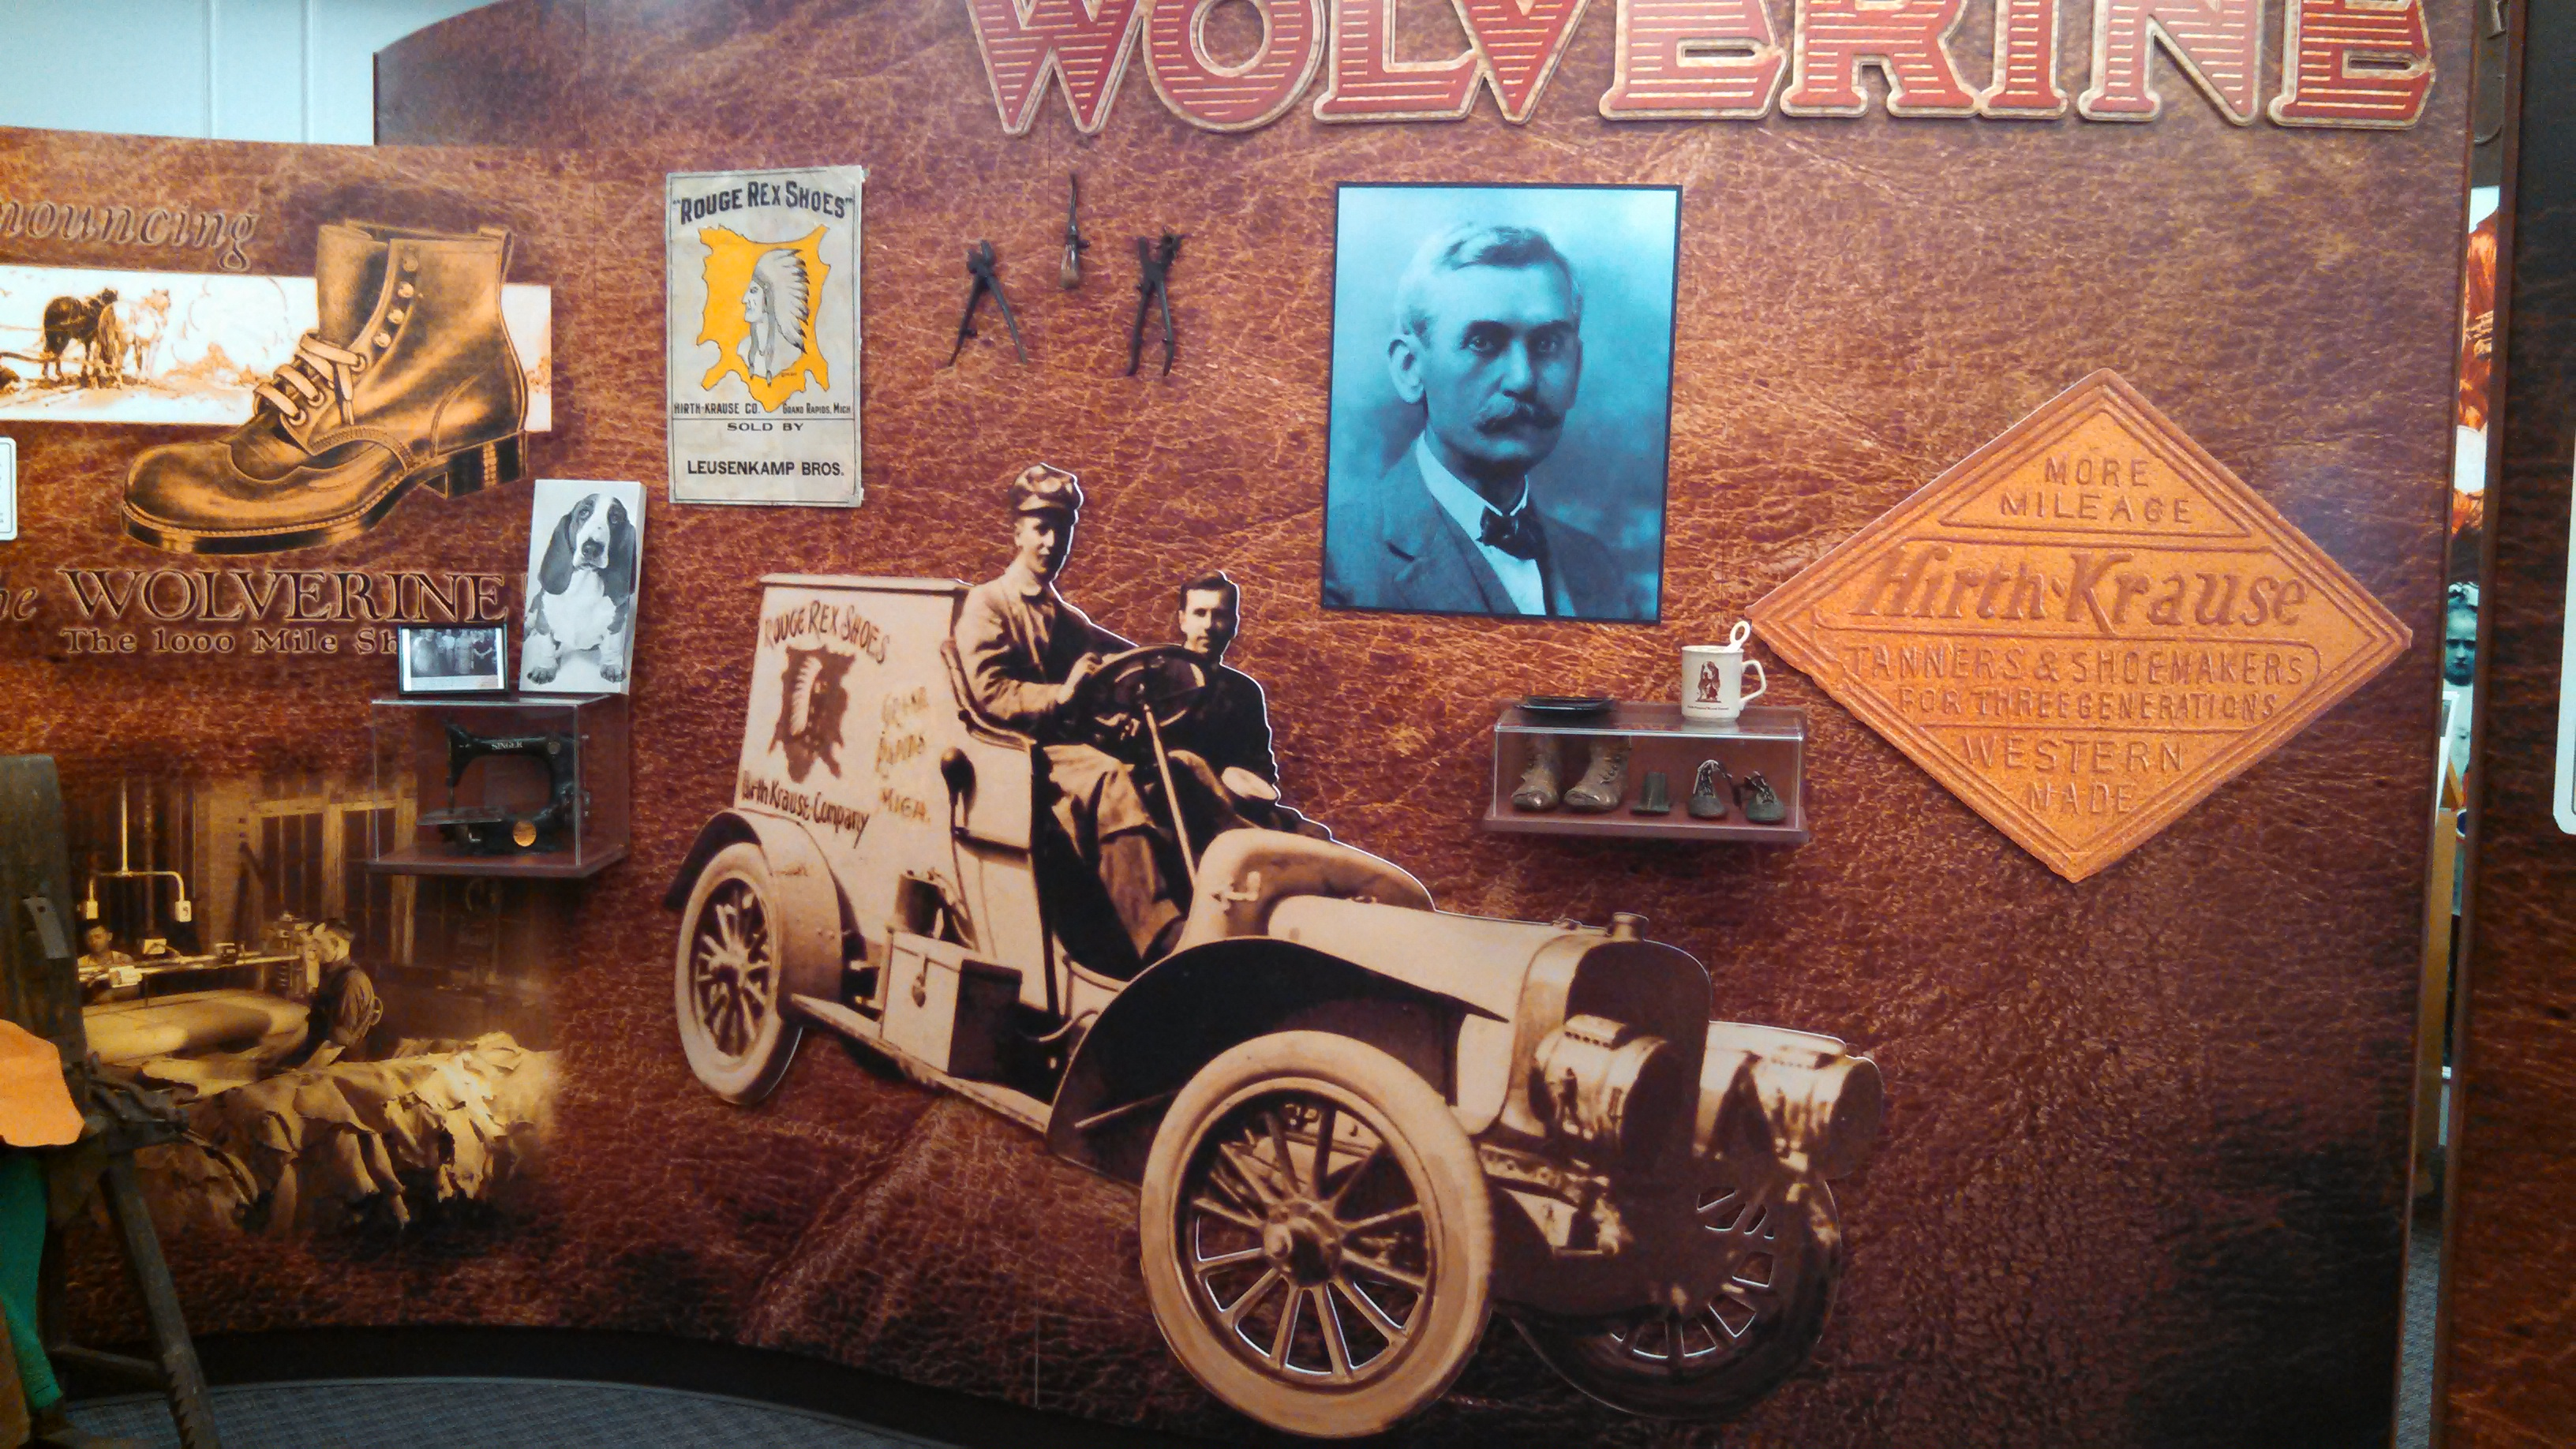 Wolverine World Wide exhibit